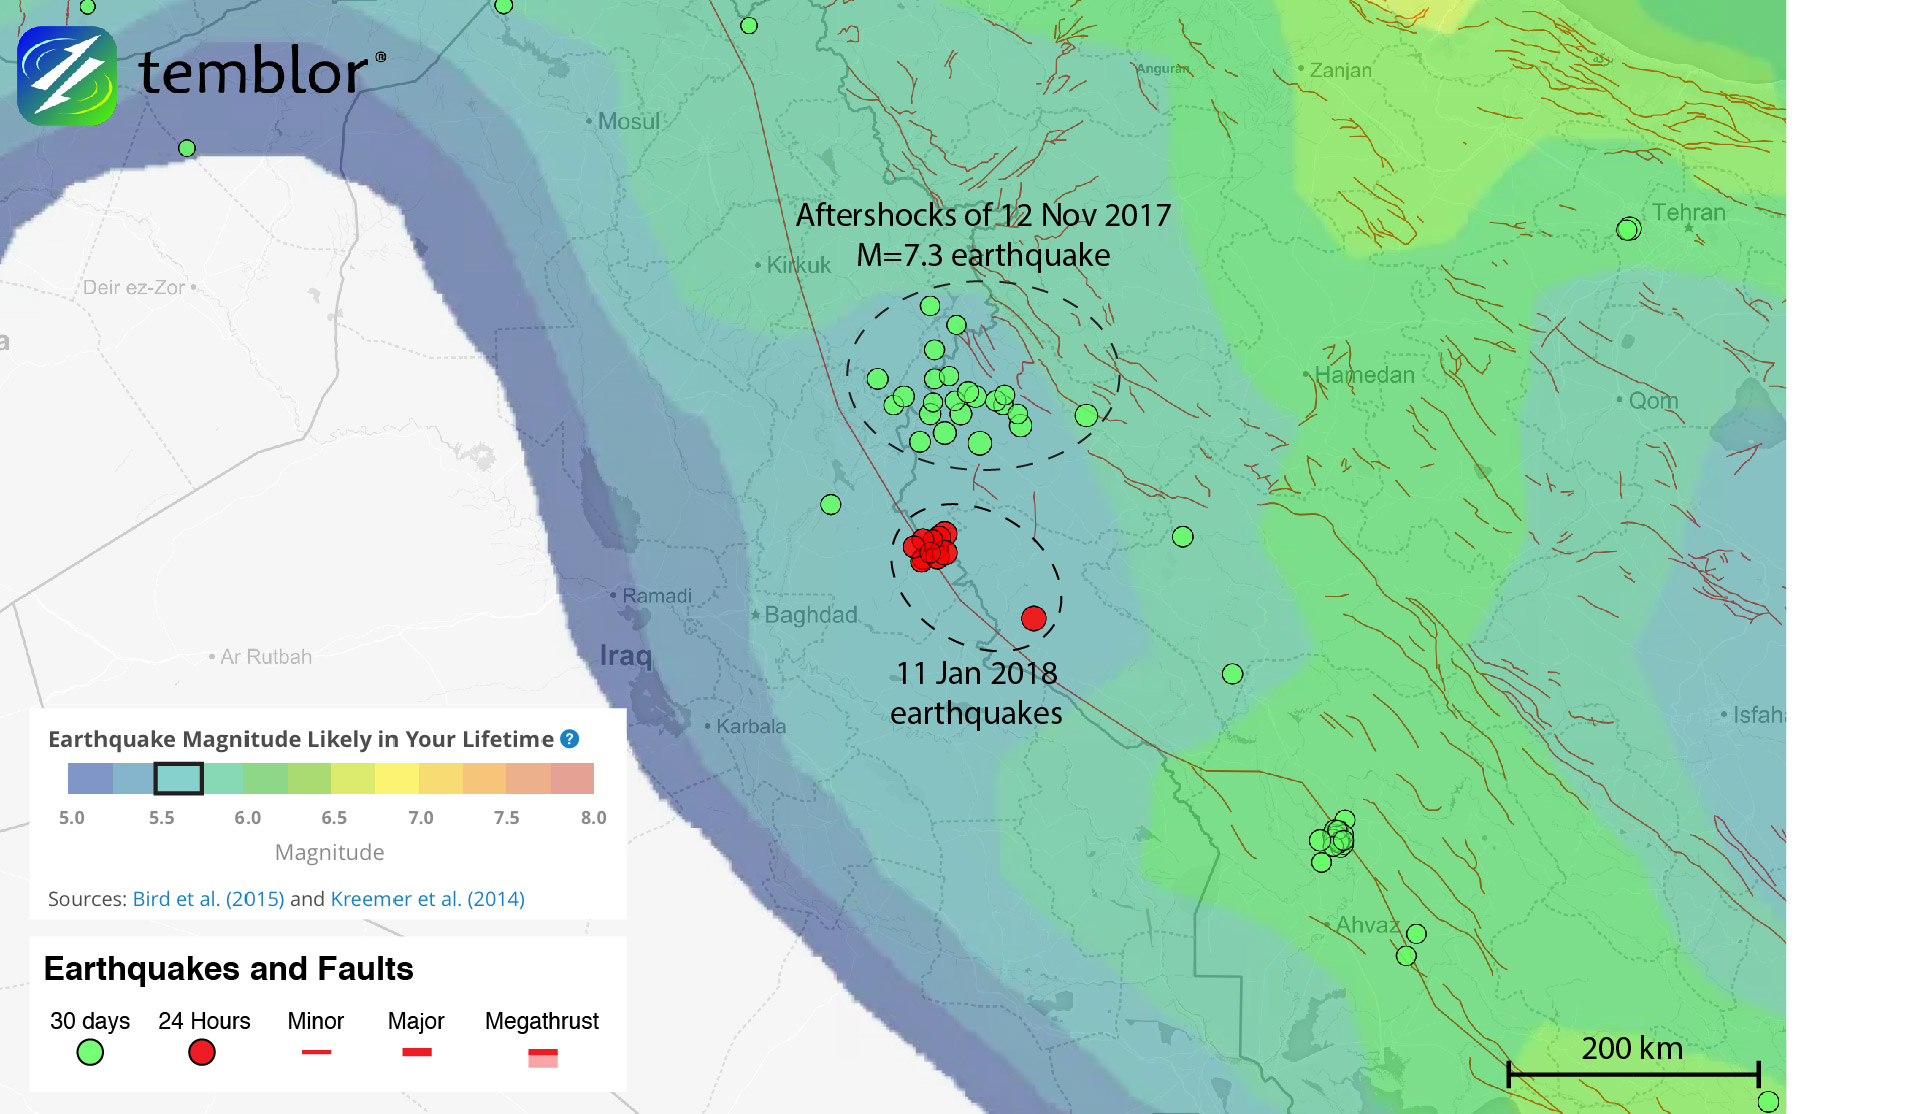 This Temblor map shows the Global Earthquake Activity Rate (GEAR) model for much of Iran and Iraq. This shows how today's earthquakes should not be considered surprising, as M=5.5+ quakes are likely in your lifetime.